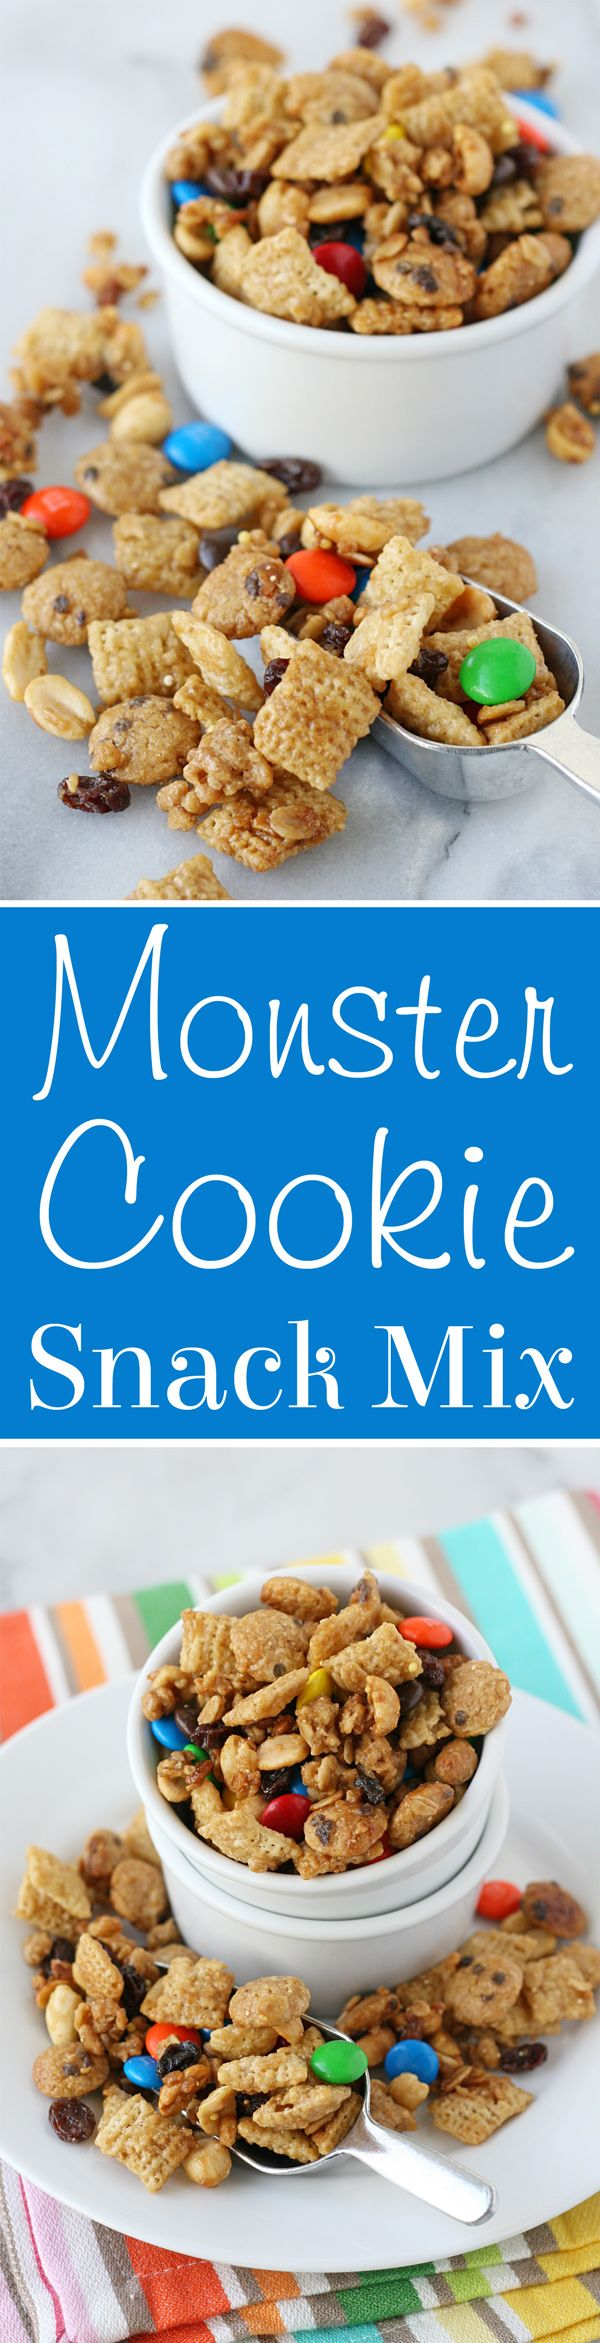 Crazy delicious!! Sweet, salty, crunchy and amazing MONSTER COOKIE SNACK MIX!